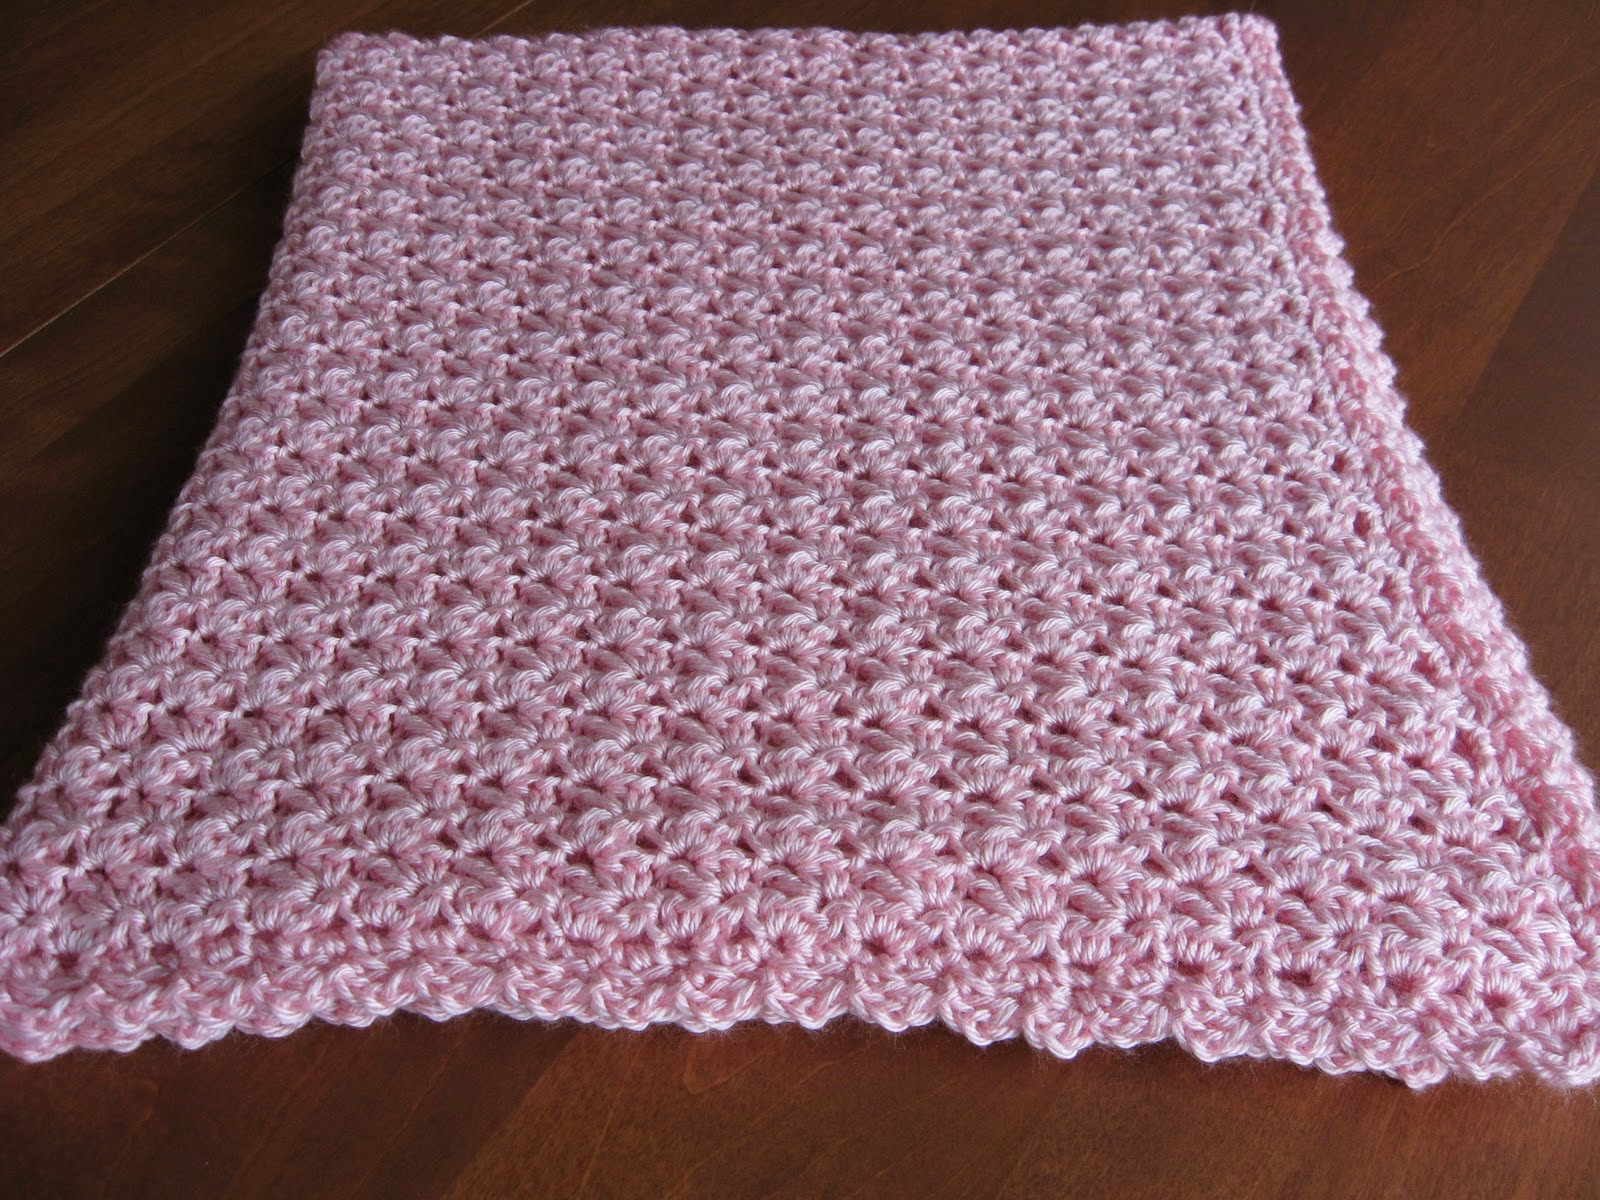 Crocheting A Baby Blanket For Beginners : ... crochet baby blanket, quick and easy crochet baby blanket patterns